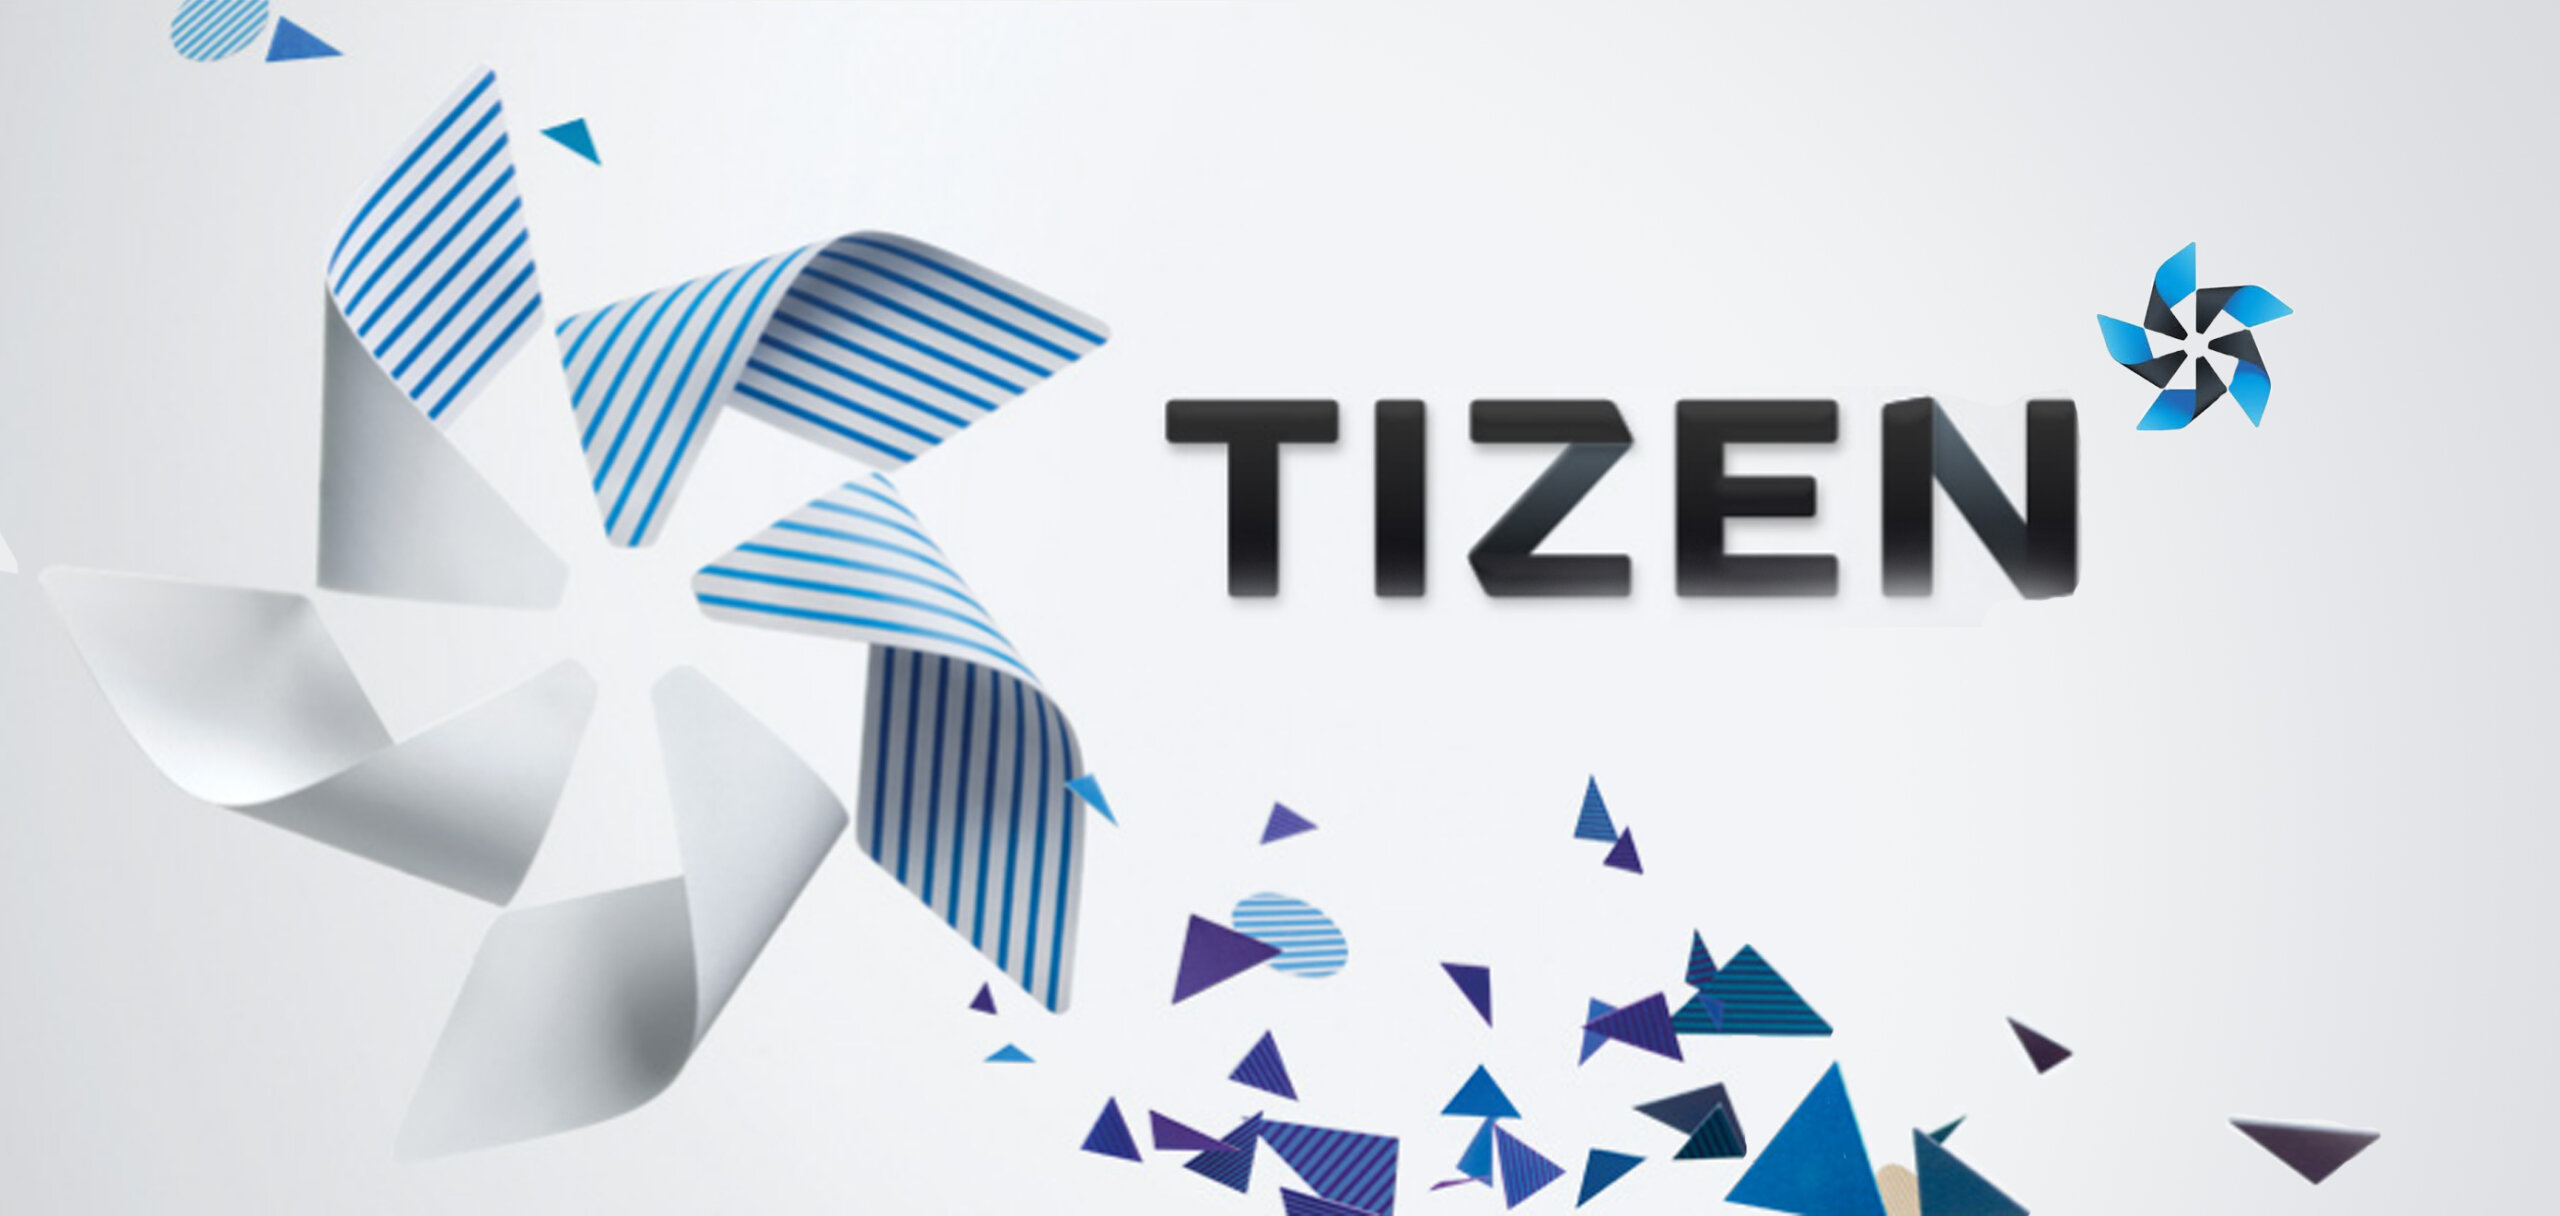 Tizen logo wallpaper scaled